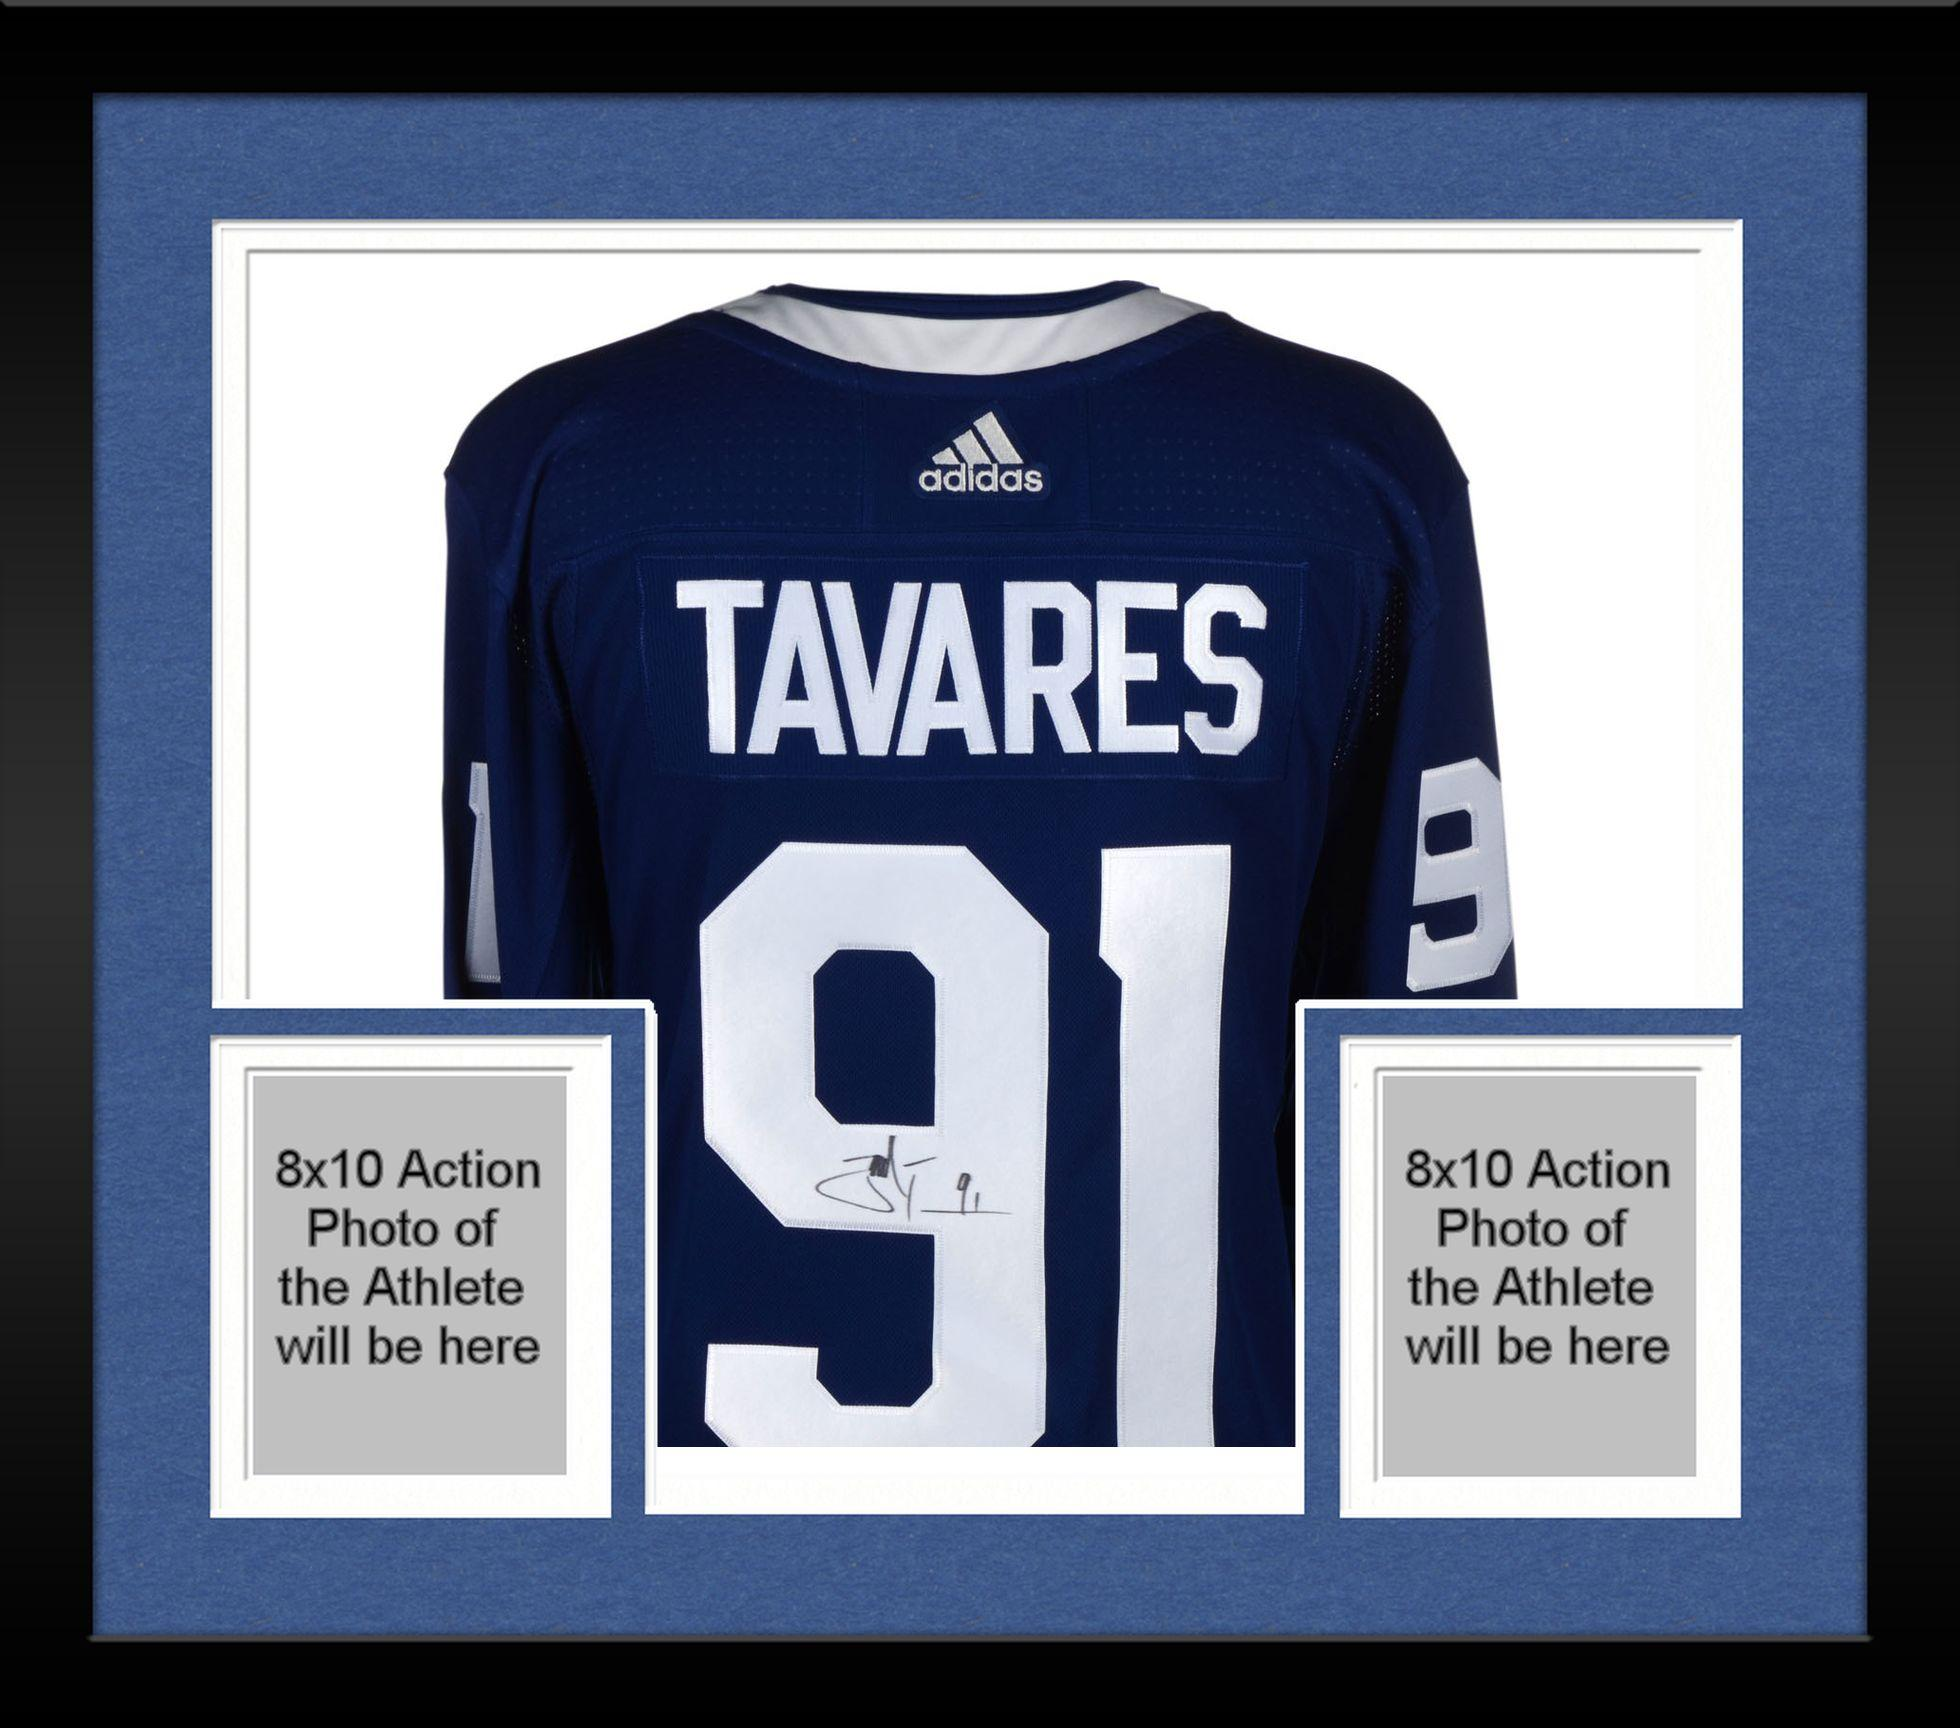 new product 53b37 a0446 Framed John Tavares Toronto Maple Leafs Autographed Blue Adidas Authentic  Jersey - Fanatics Authentic Certified